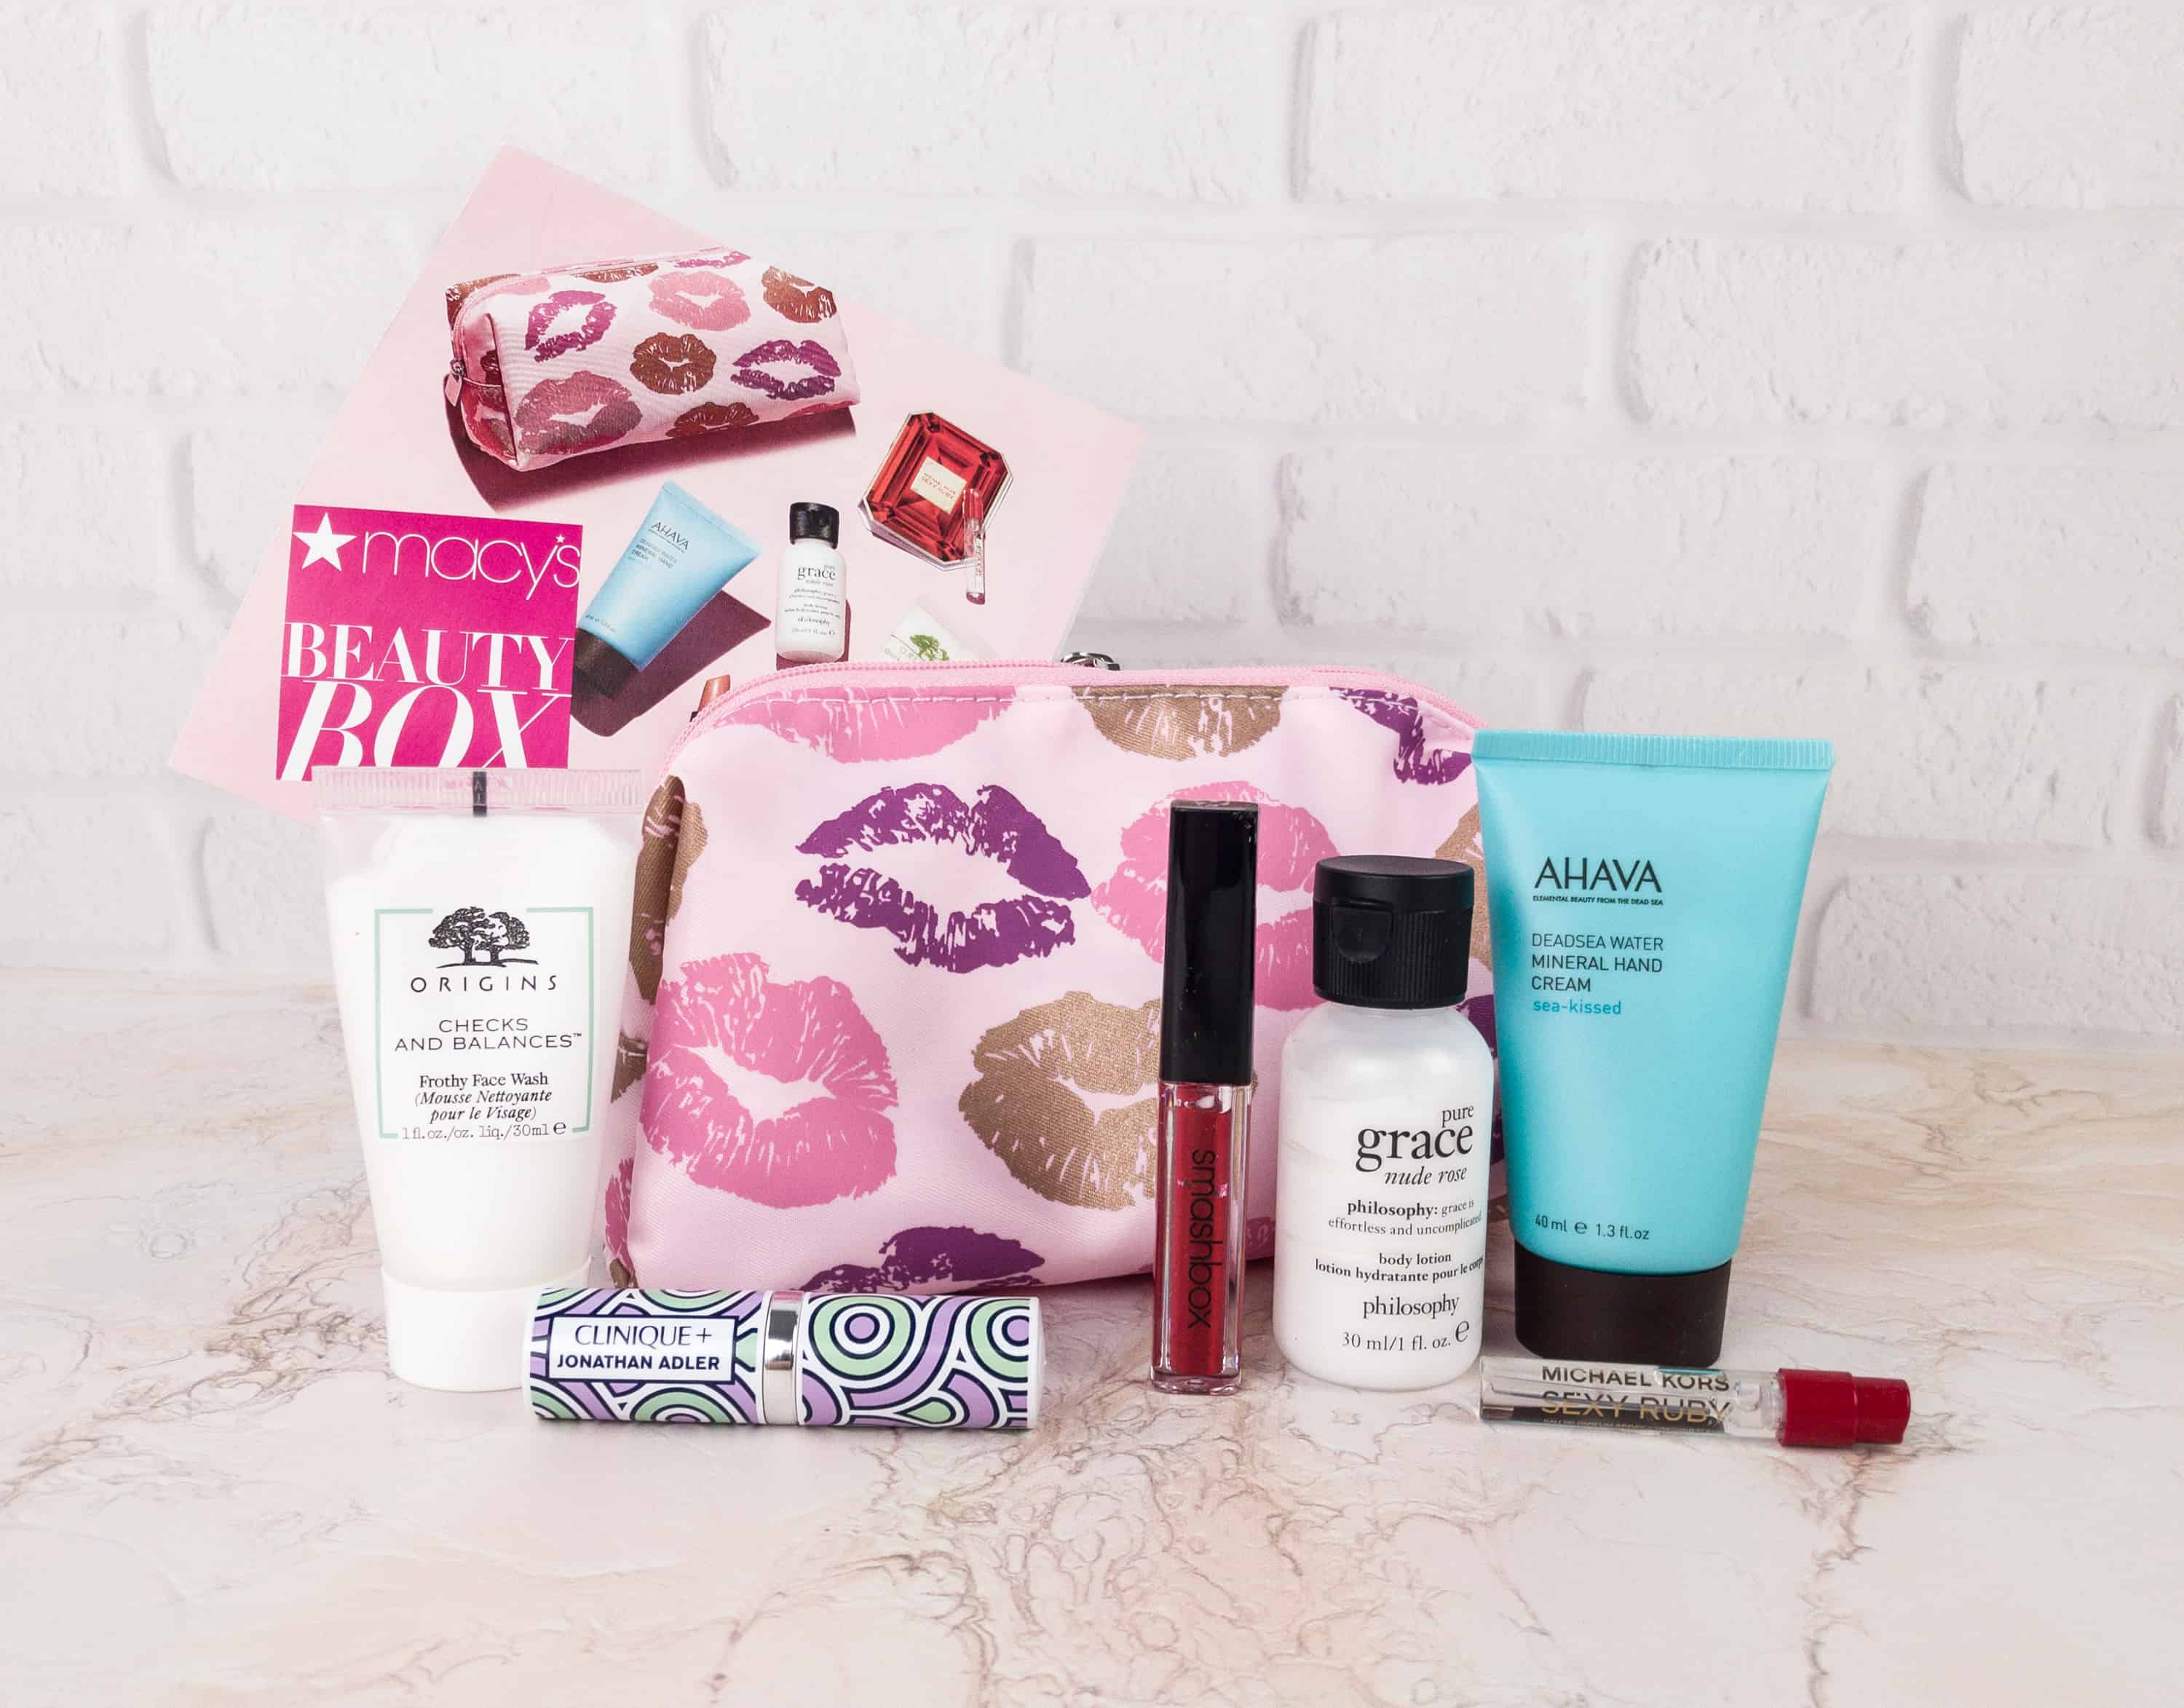 Macy's Beauty Box January 2018 Subscription Box Review